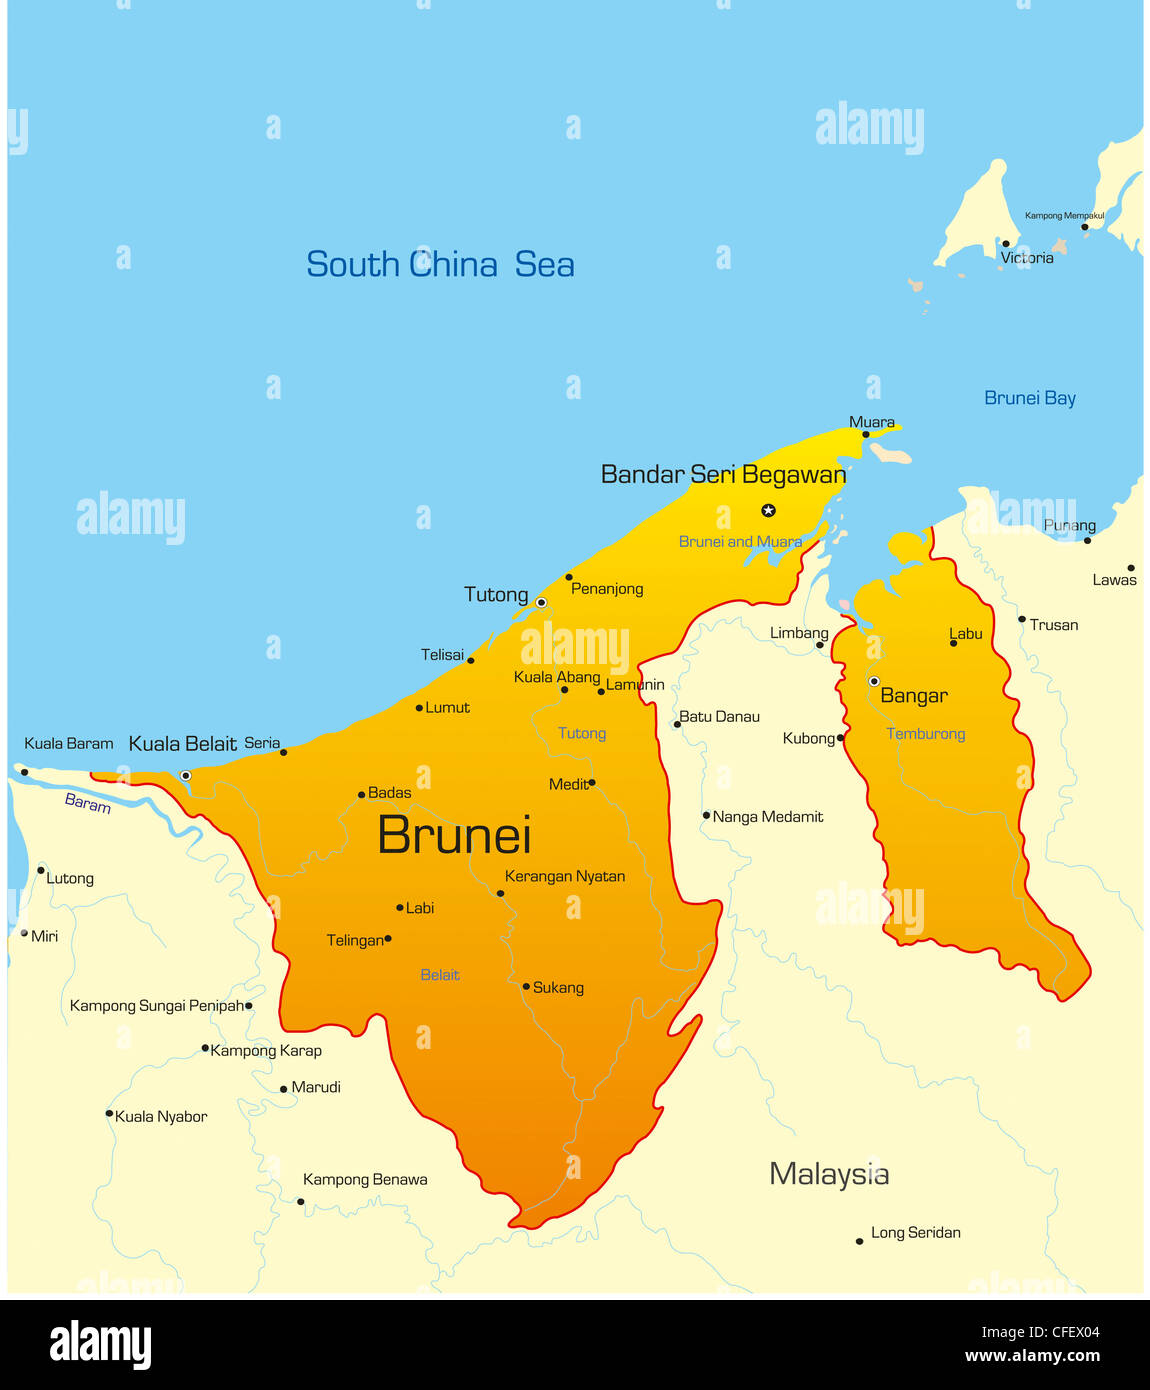 Vector Map Of Brunei Country Stock Photo Royalty Free Image - Brunei map